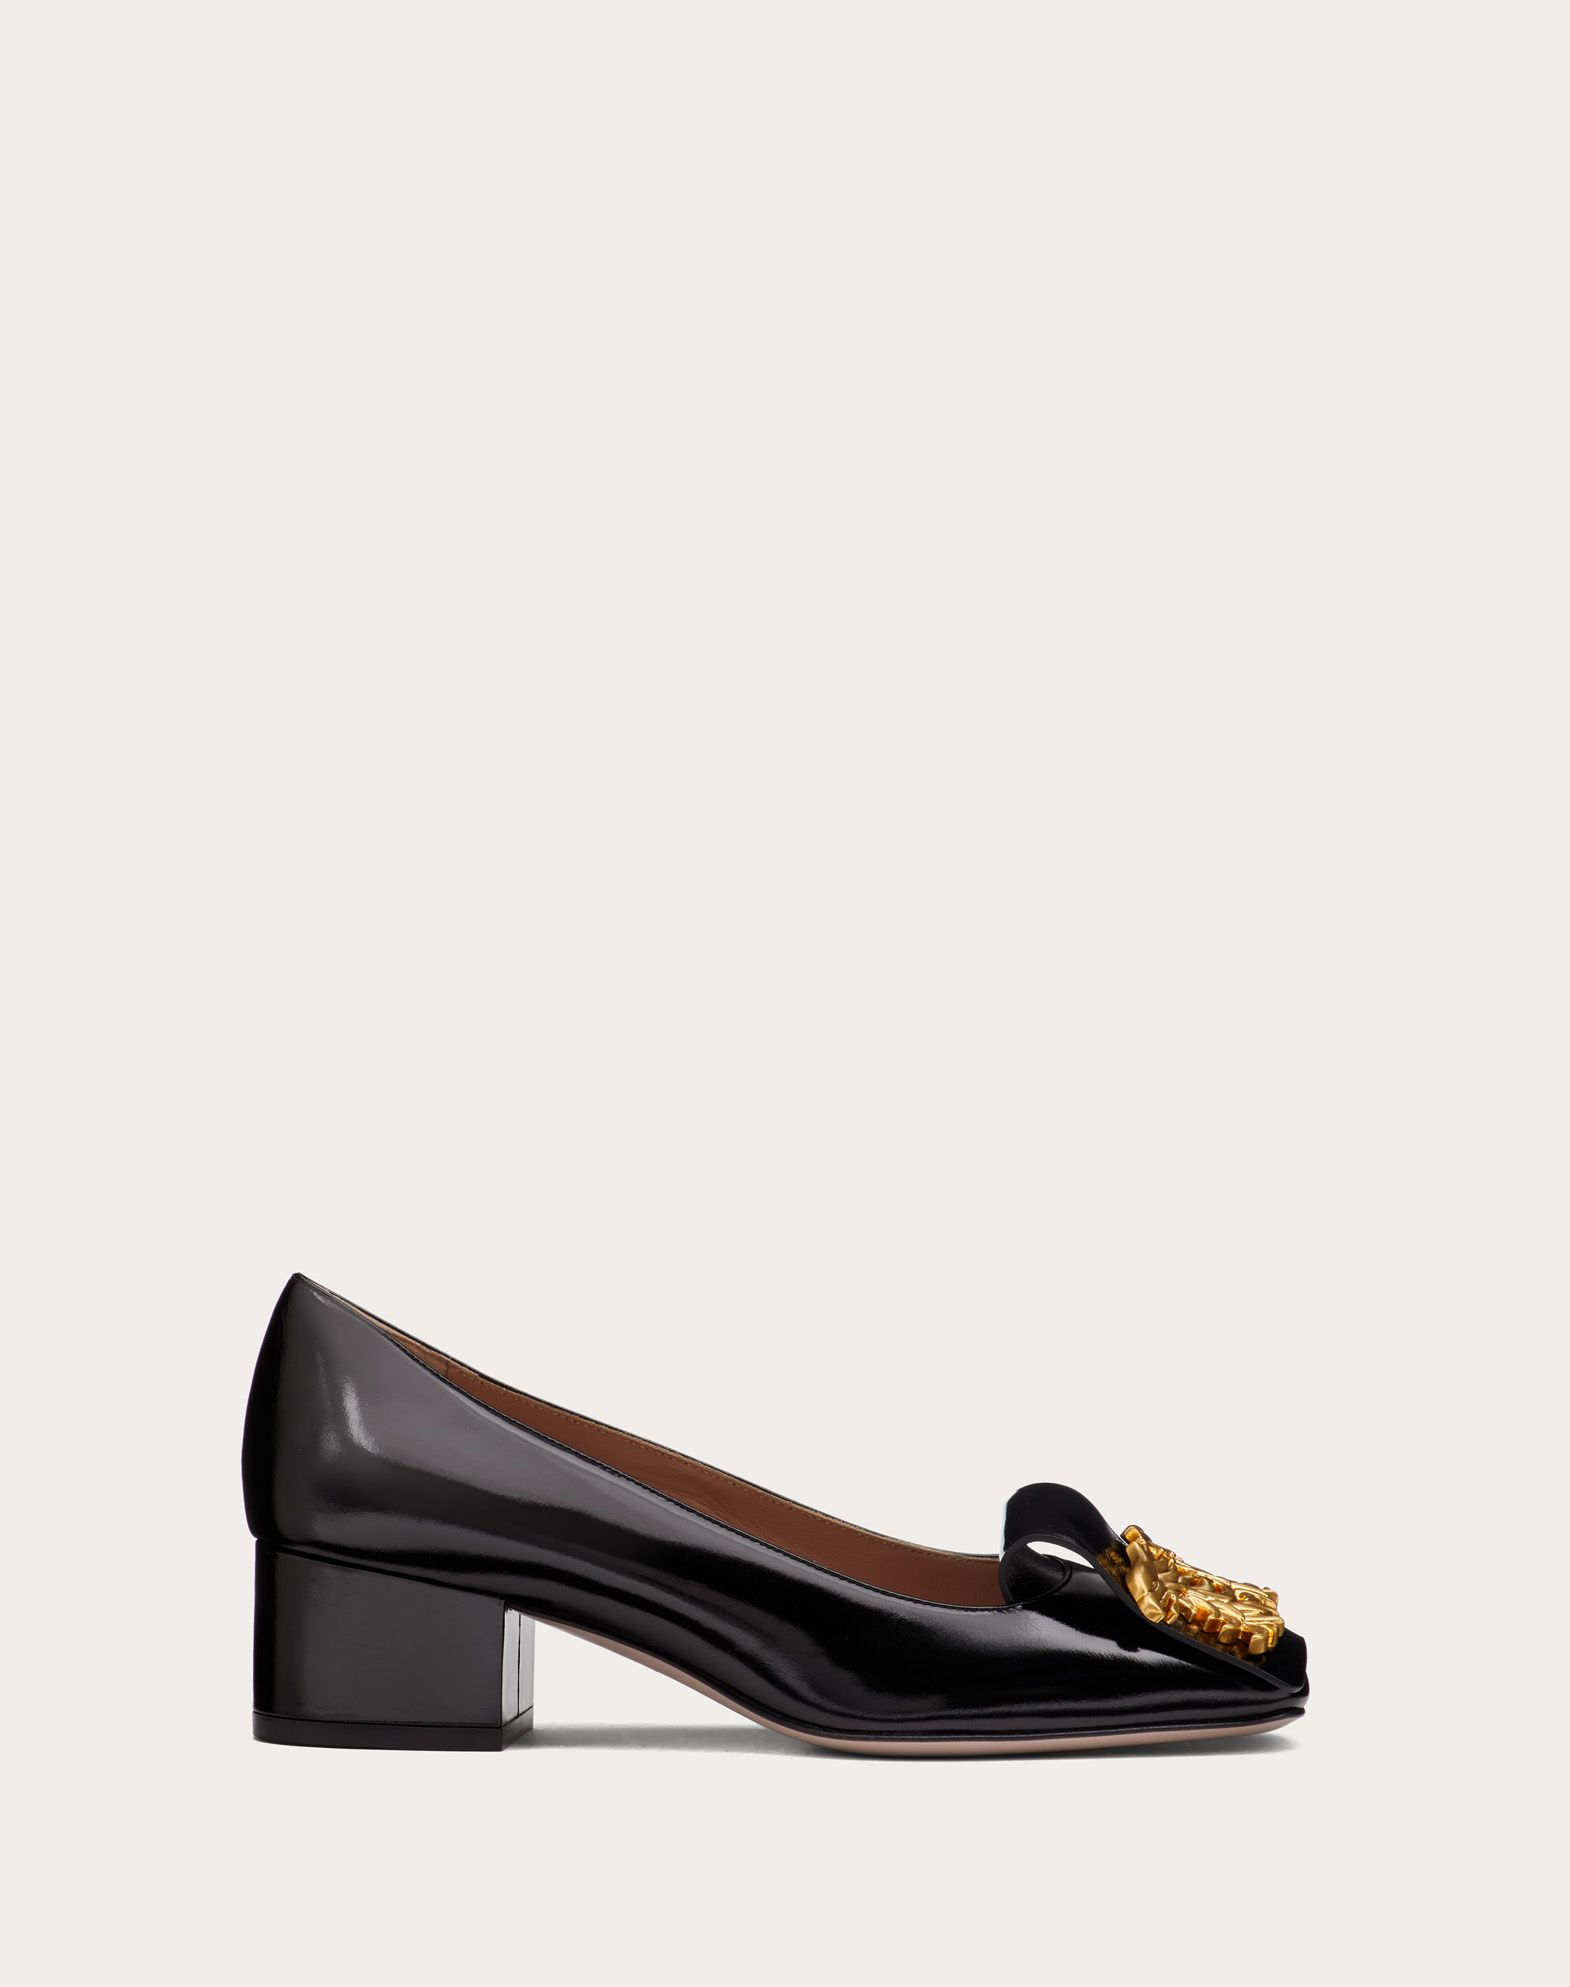 Griffin Calfskin Pump 45 mm